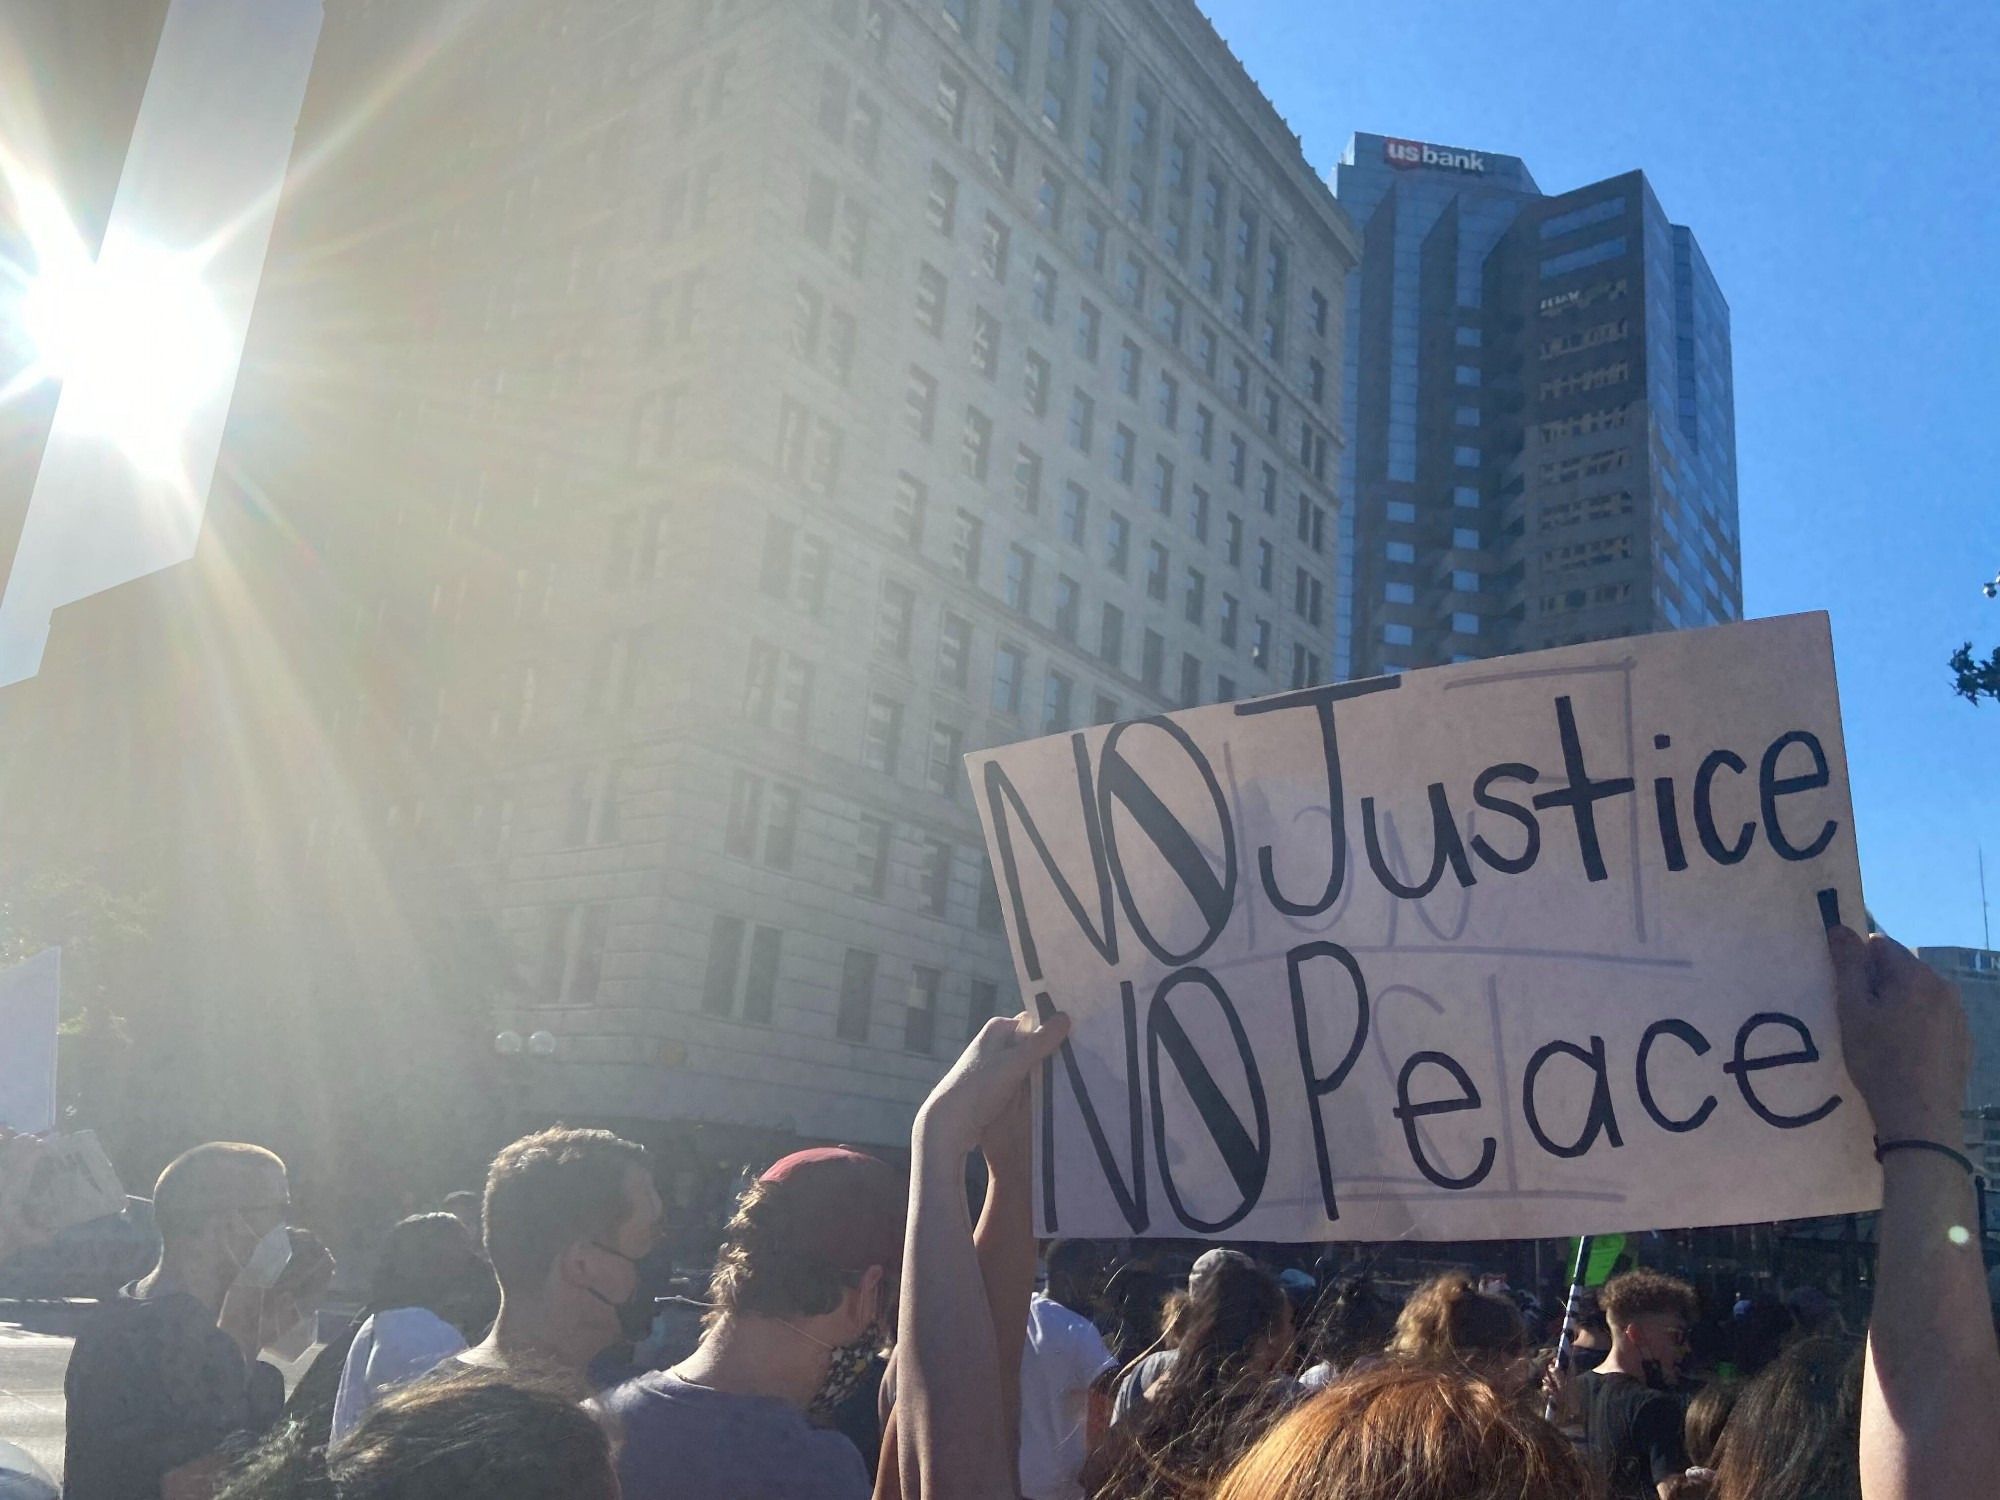 Protestors hold up a 'No Justice, No Peace' sign while walking.